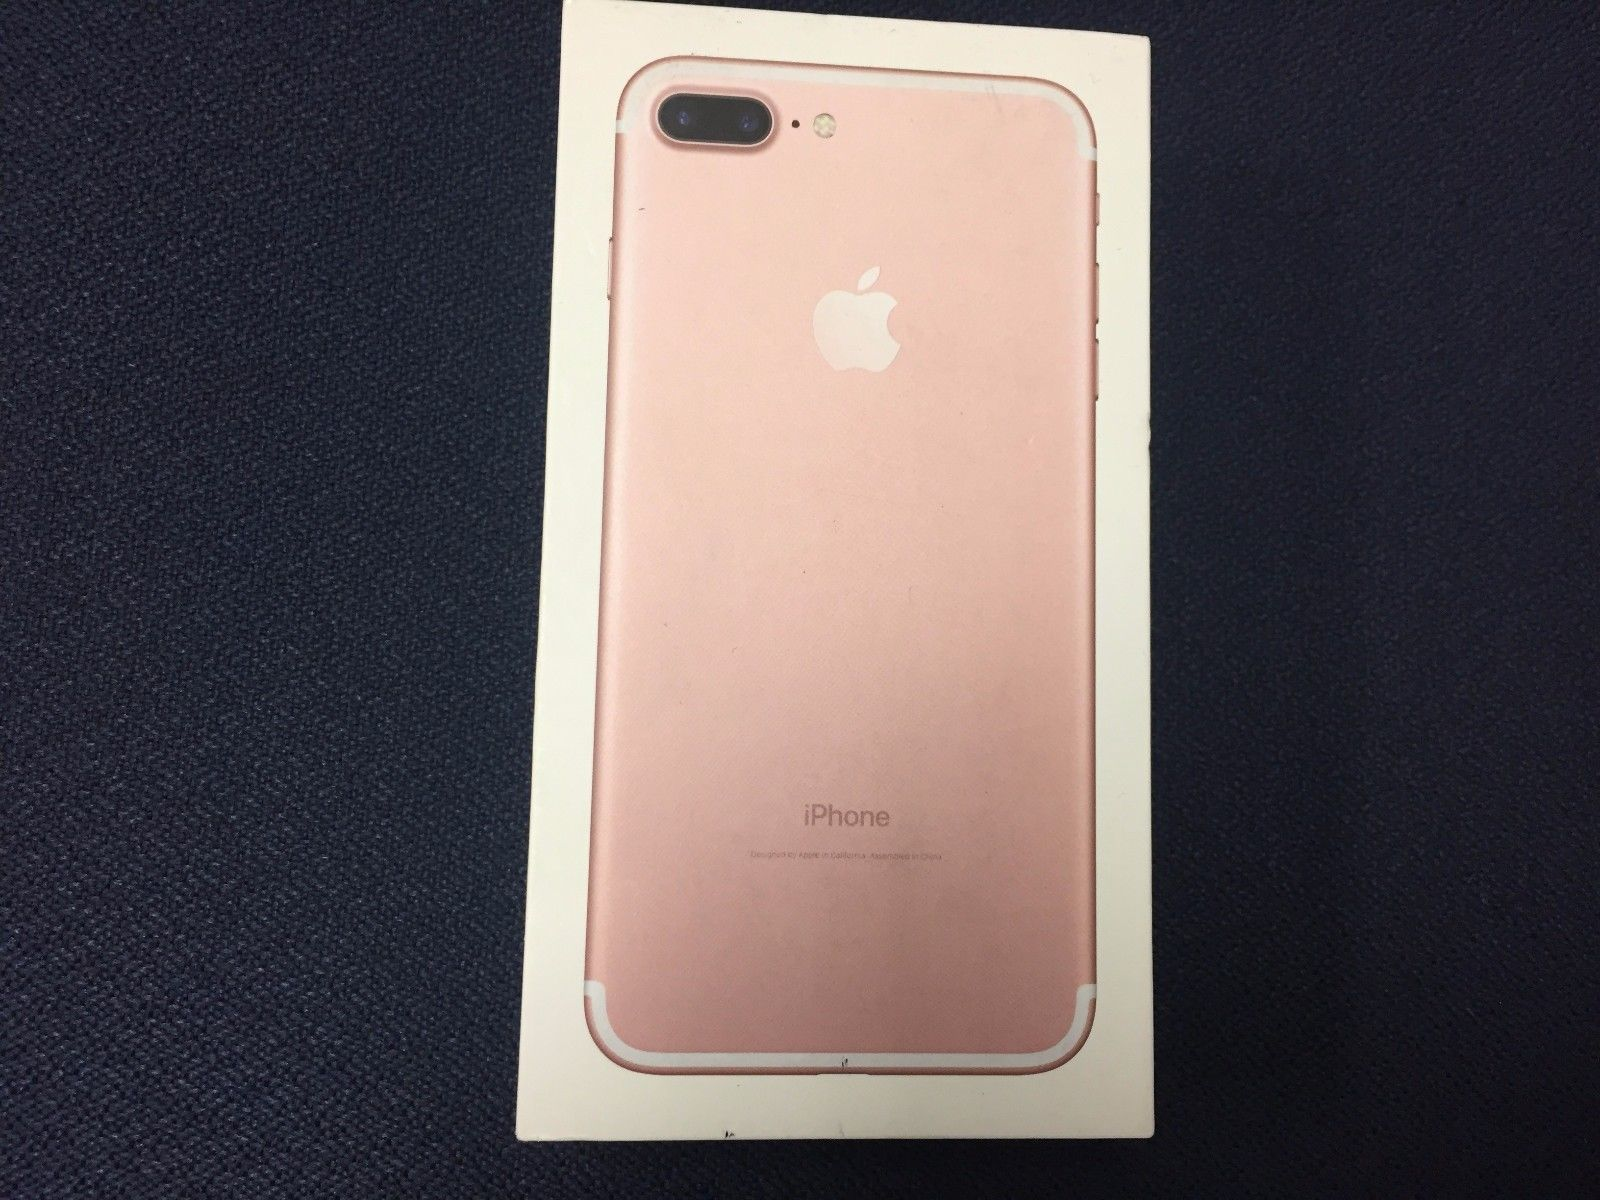 iphone 7 plus gold box. #new post #at\u0026t unlocked apple iphone 7 plus (latest model) - 32gb rose gold oem box new http://i.ebayimg.com/images/g/rsiaaosw9ghyf-43/s-l1600.jpg item iphone